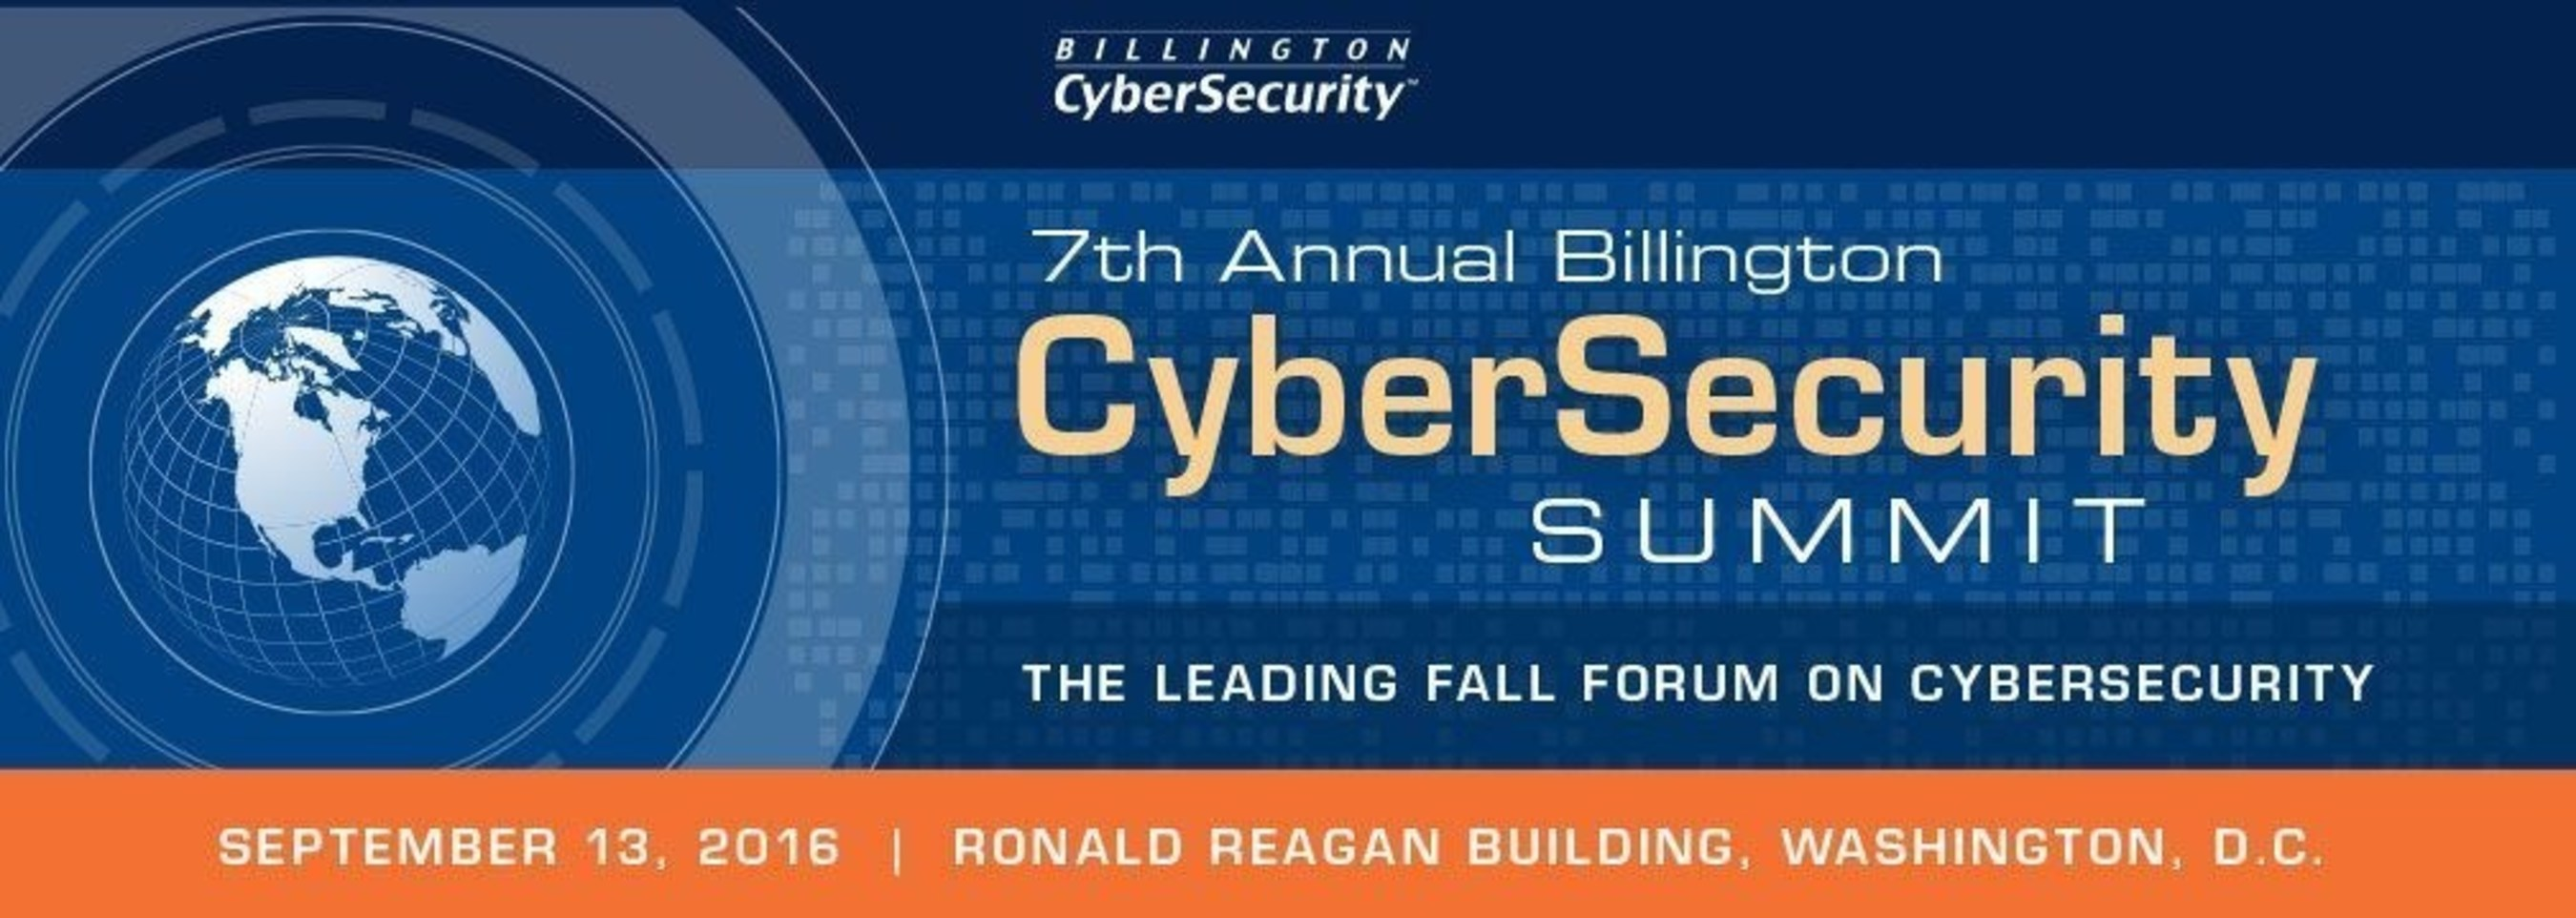 Top U.S. Defense/Intel Cybersecurity Experts and U.K. and Israel Cyber Chiefs to Speak at 7th Annual Billington CyberSecurity Summit